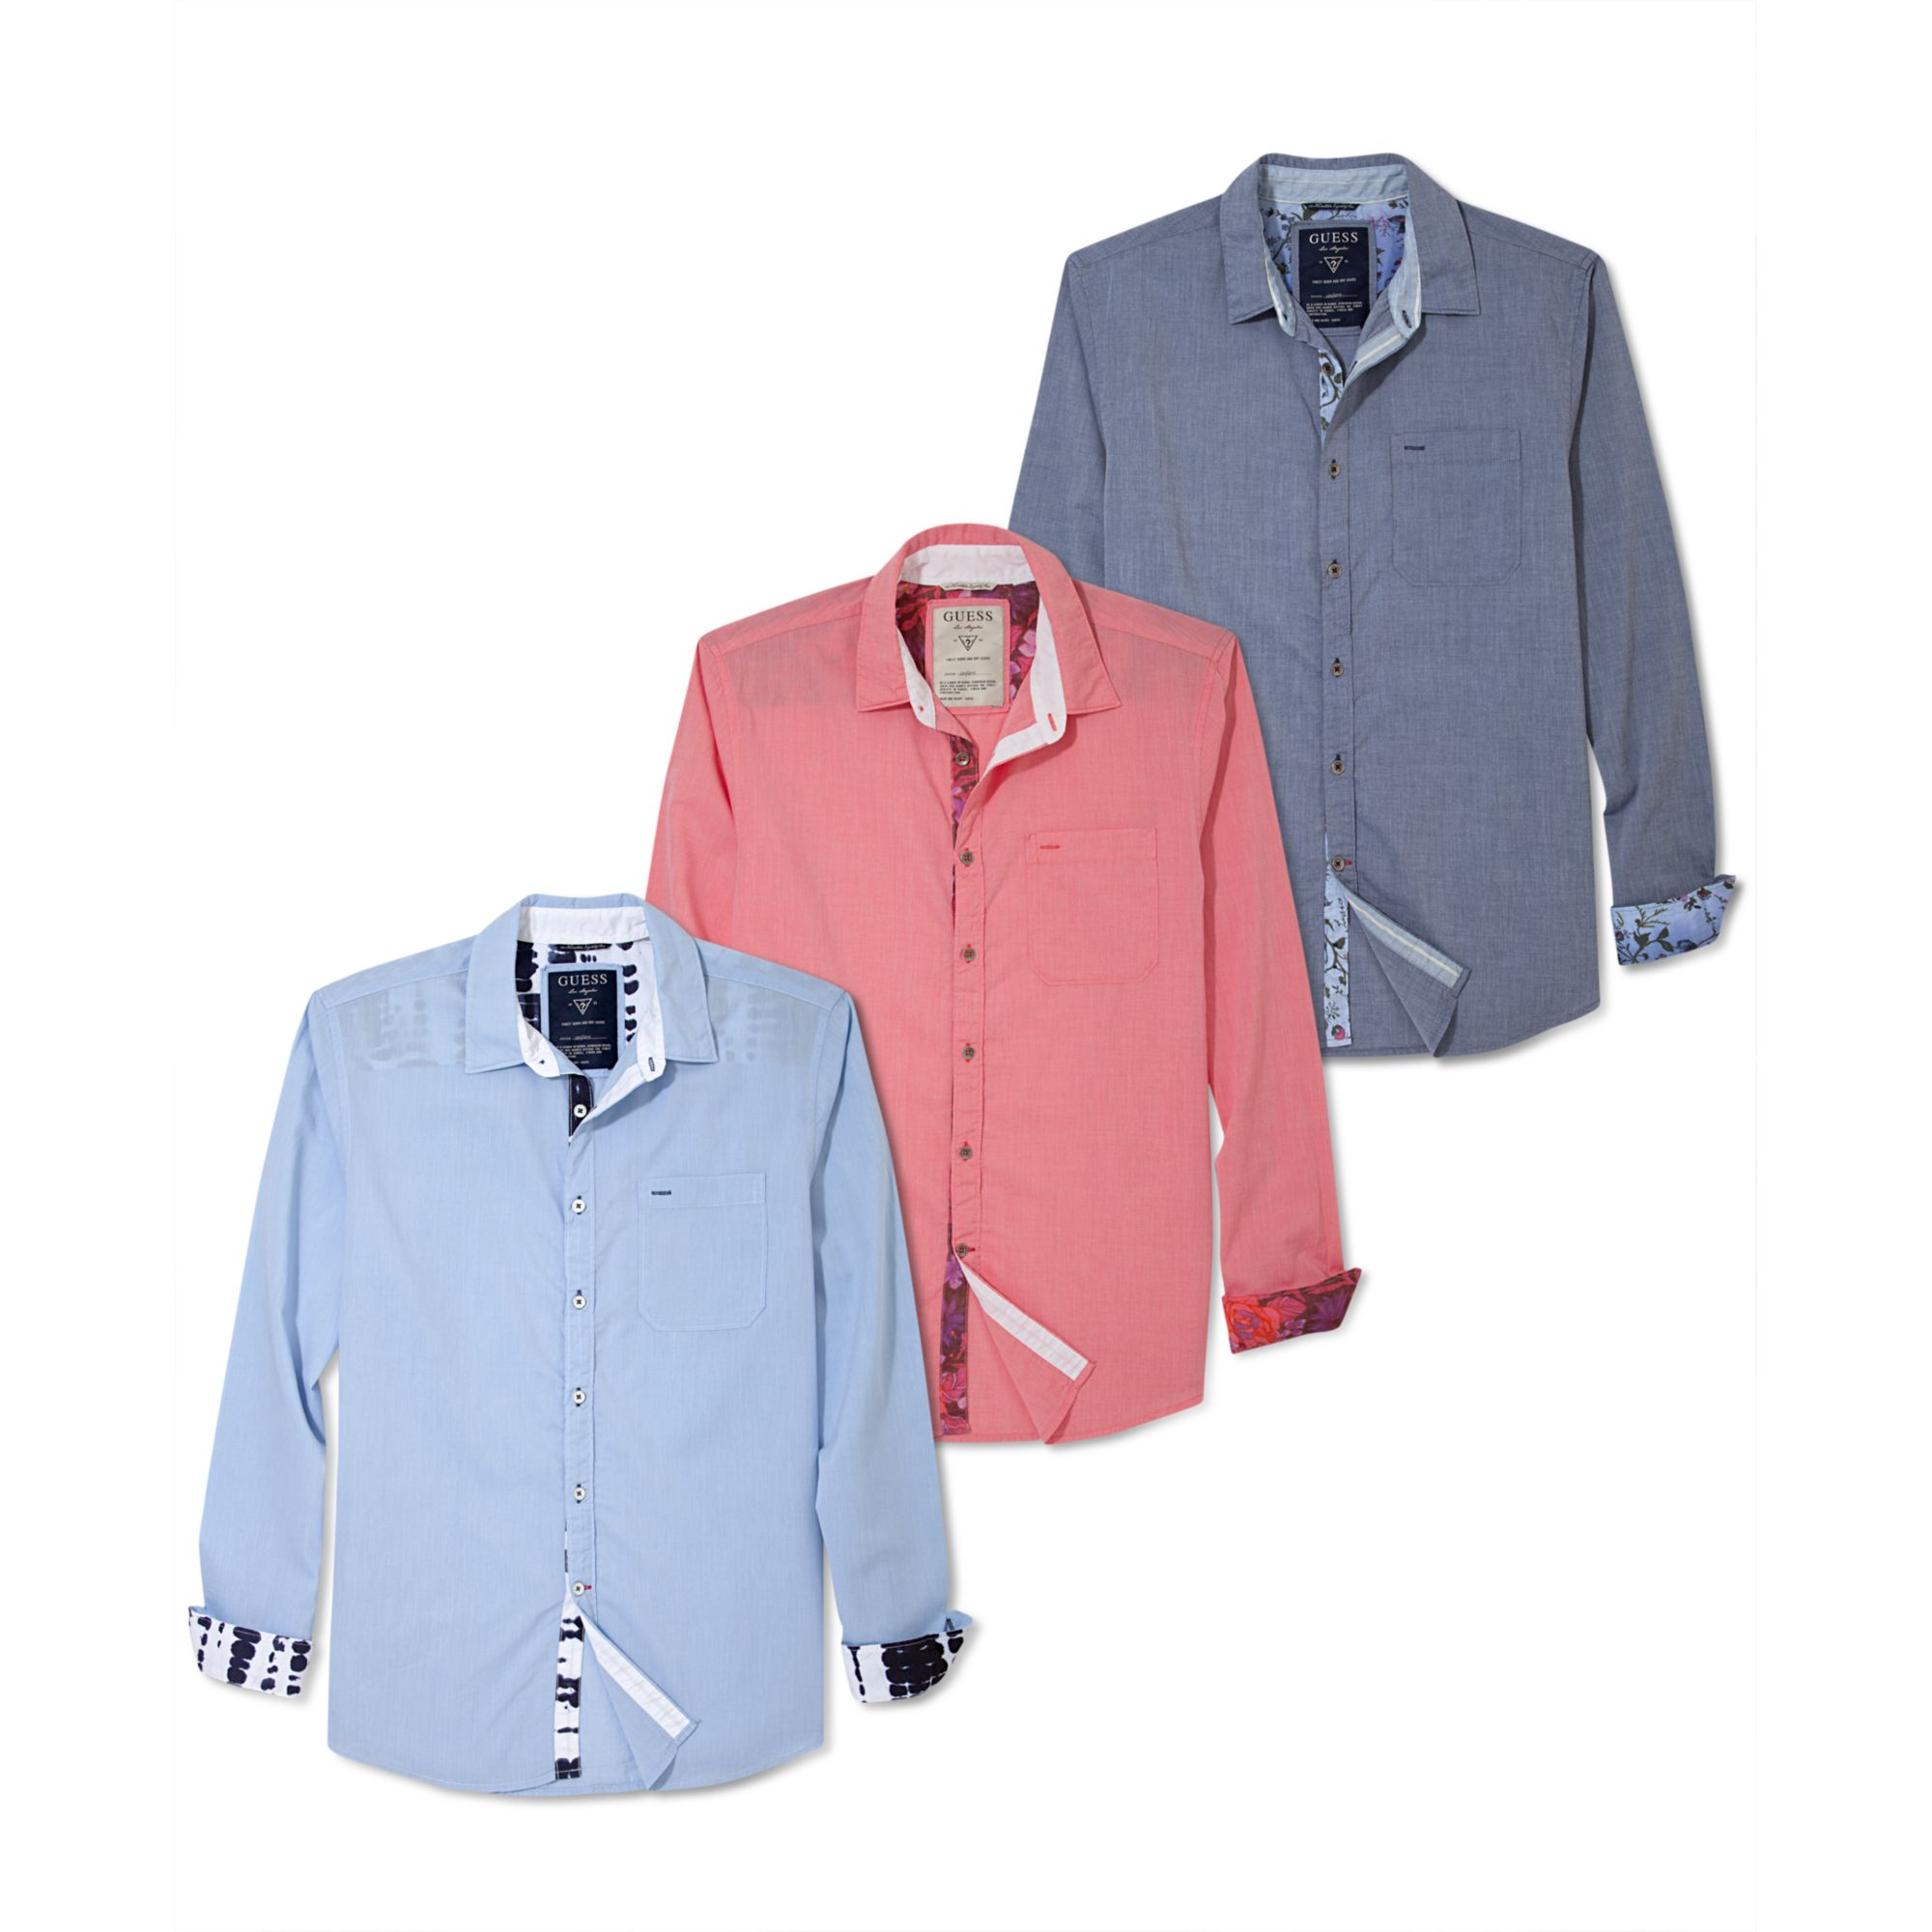 Guess Slim Fit Long Sleeve Clark Shirt In Multicolor For